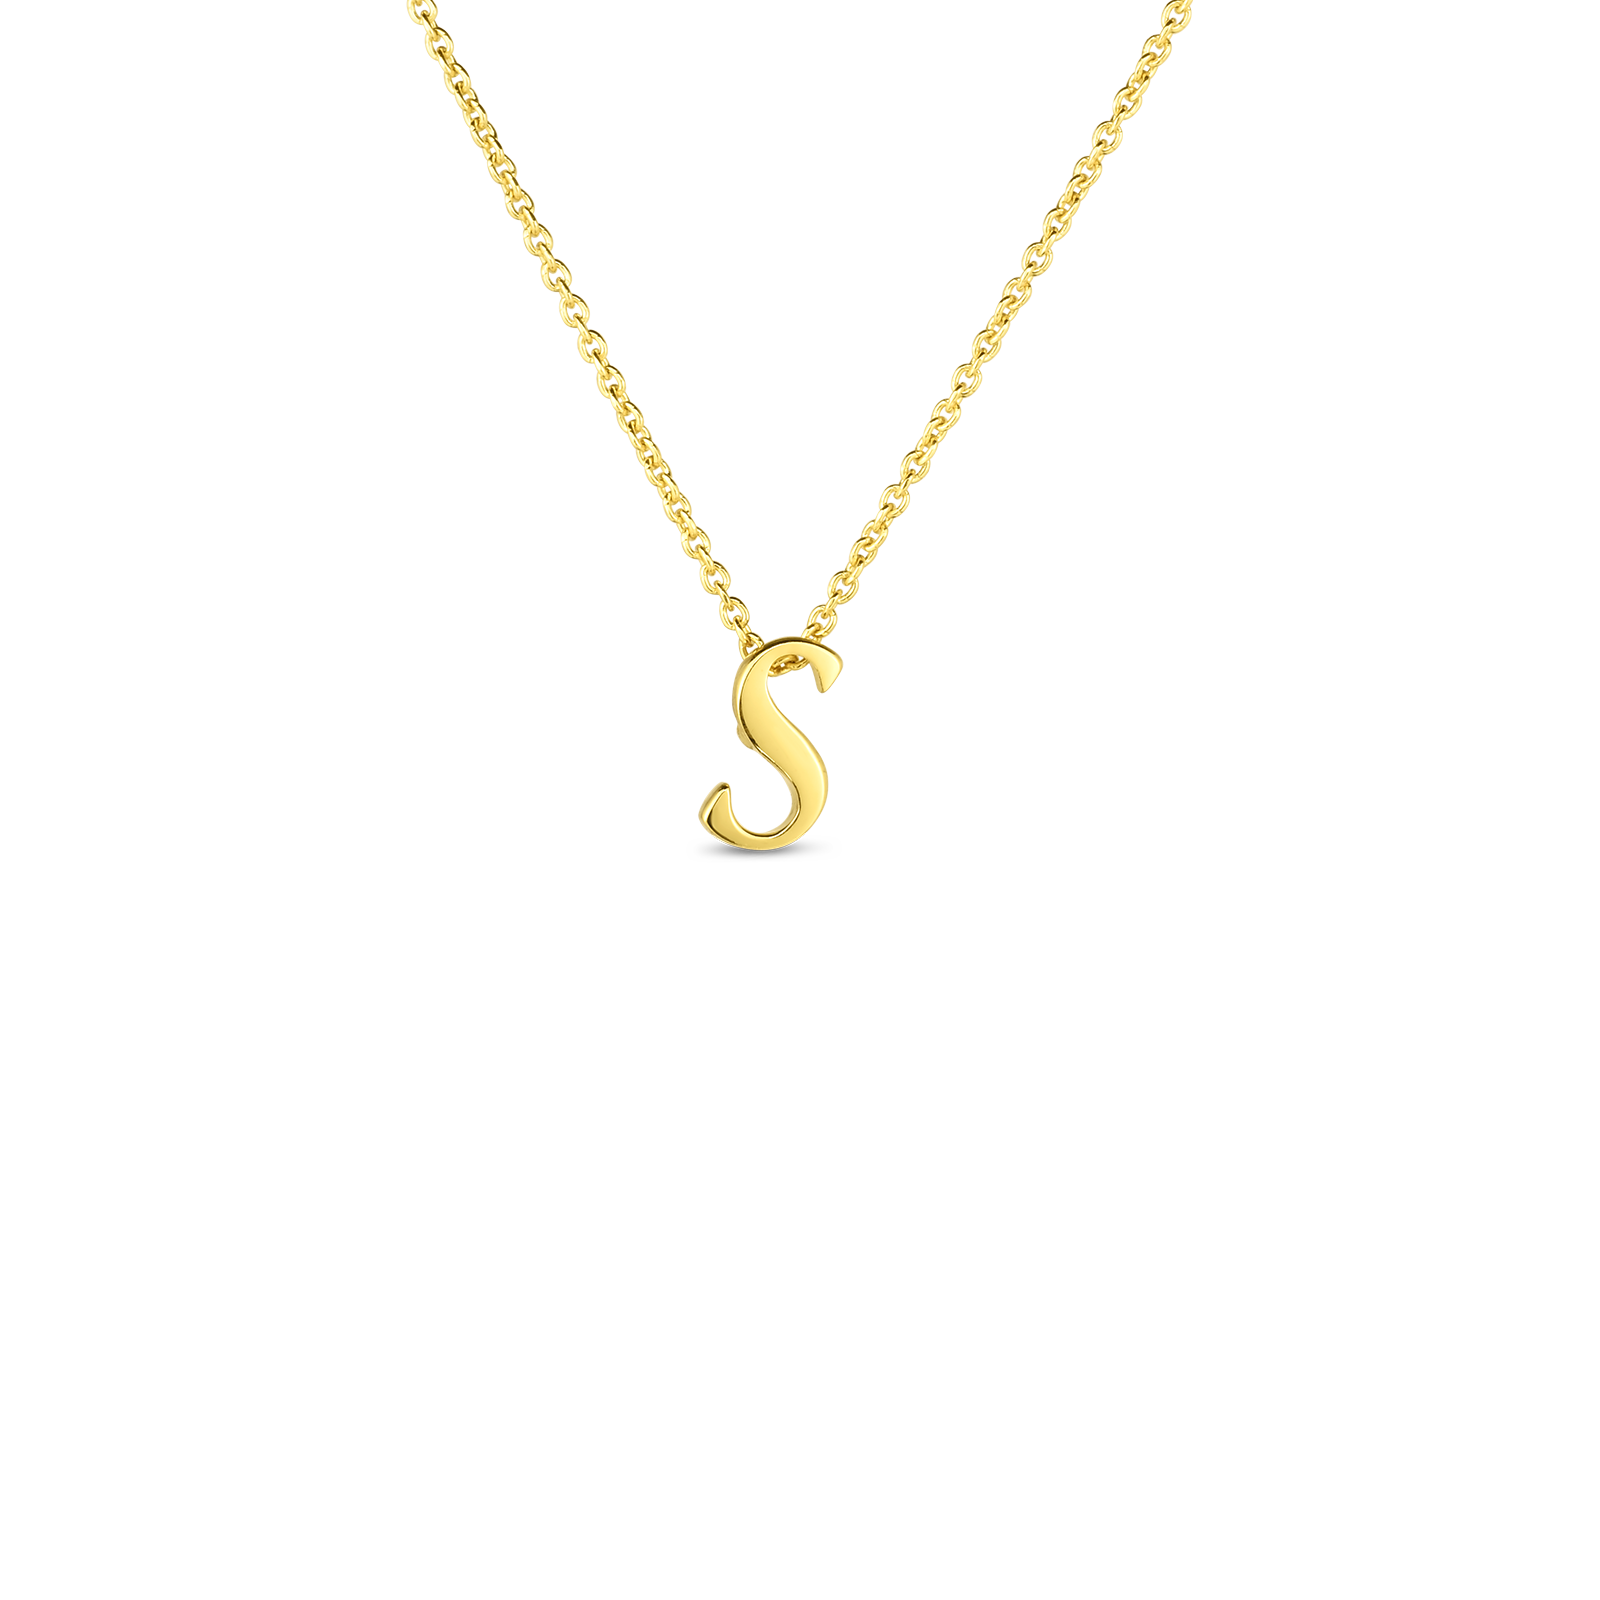 18k Small Script Initial 'S' Pendant On Chain